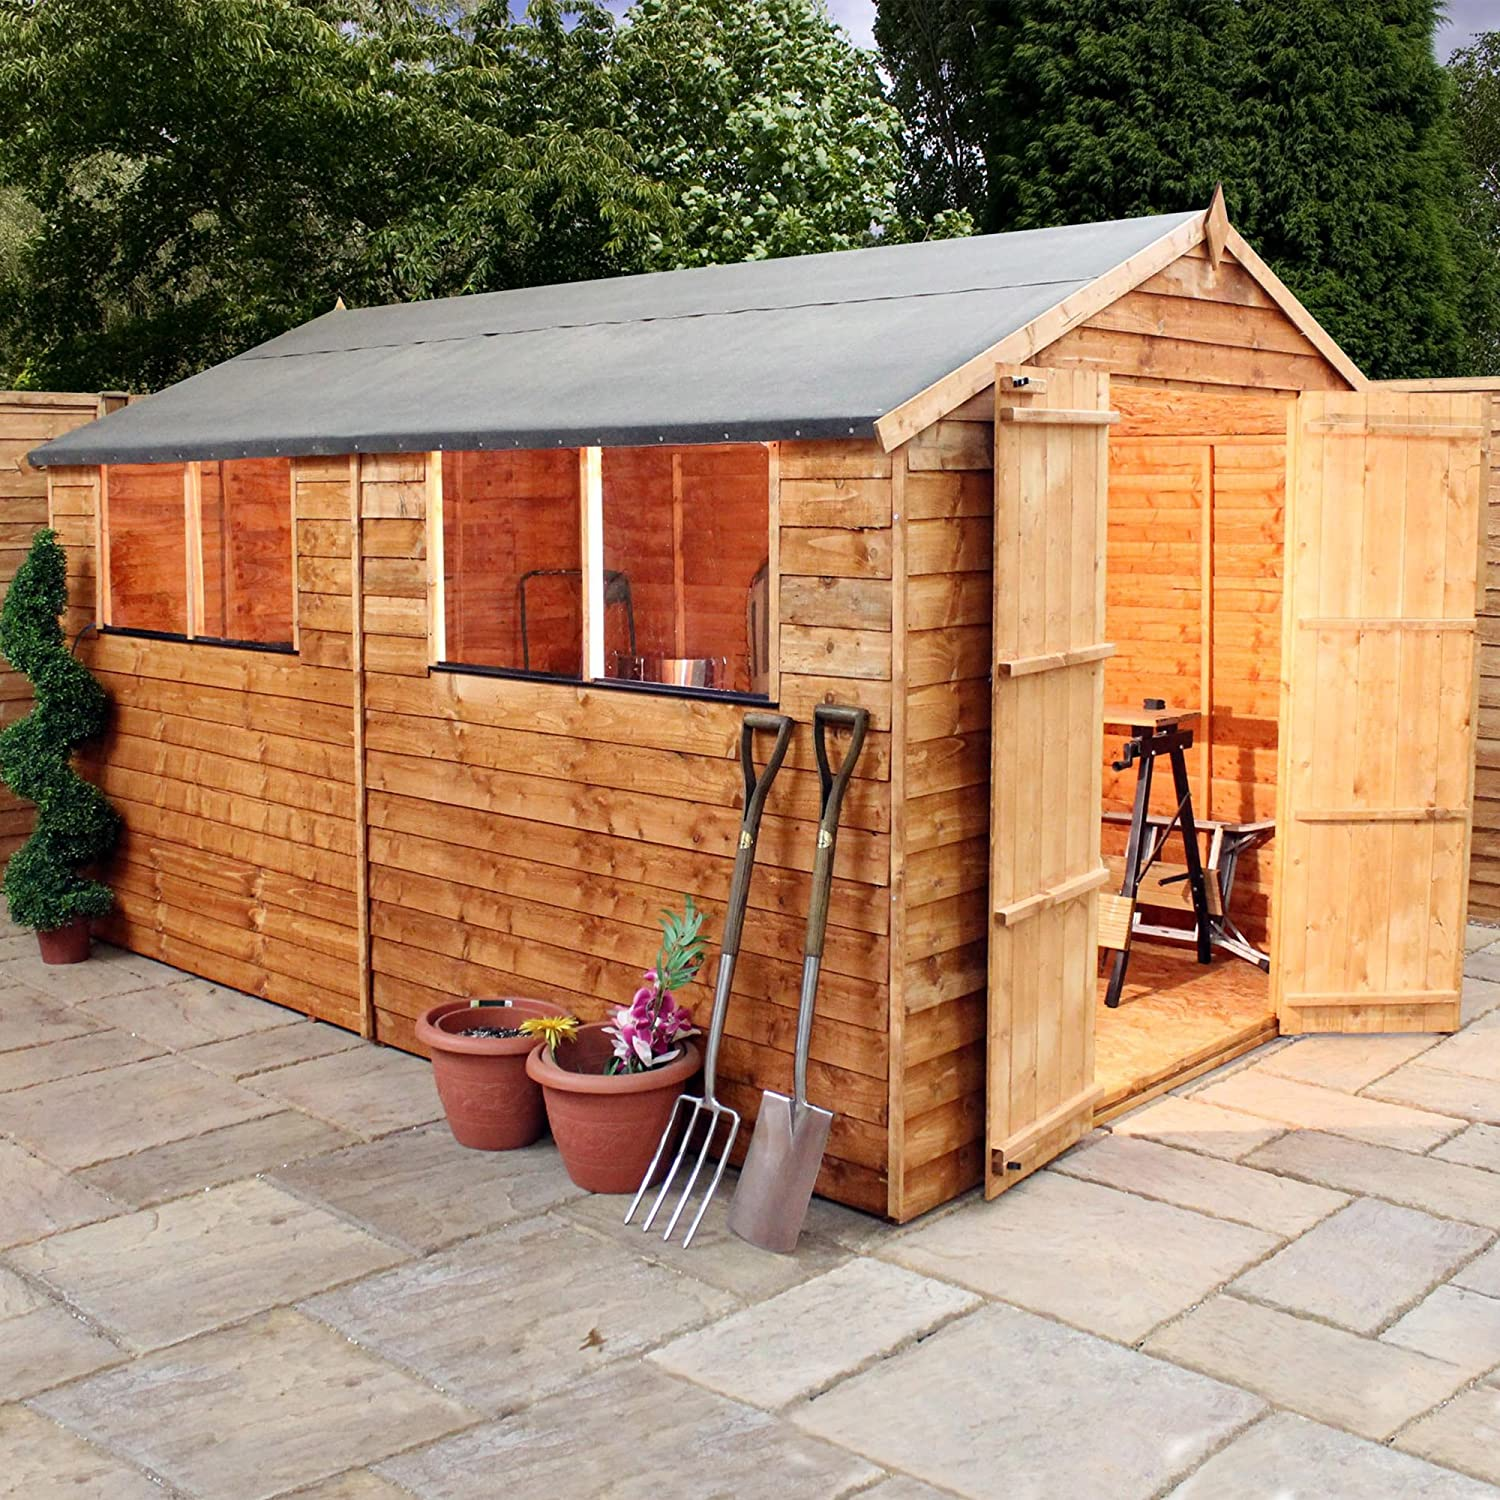 10x8 overlap wooden garden shed windows double doors apex roof felt by waltons amazoncouk garden outdoors